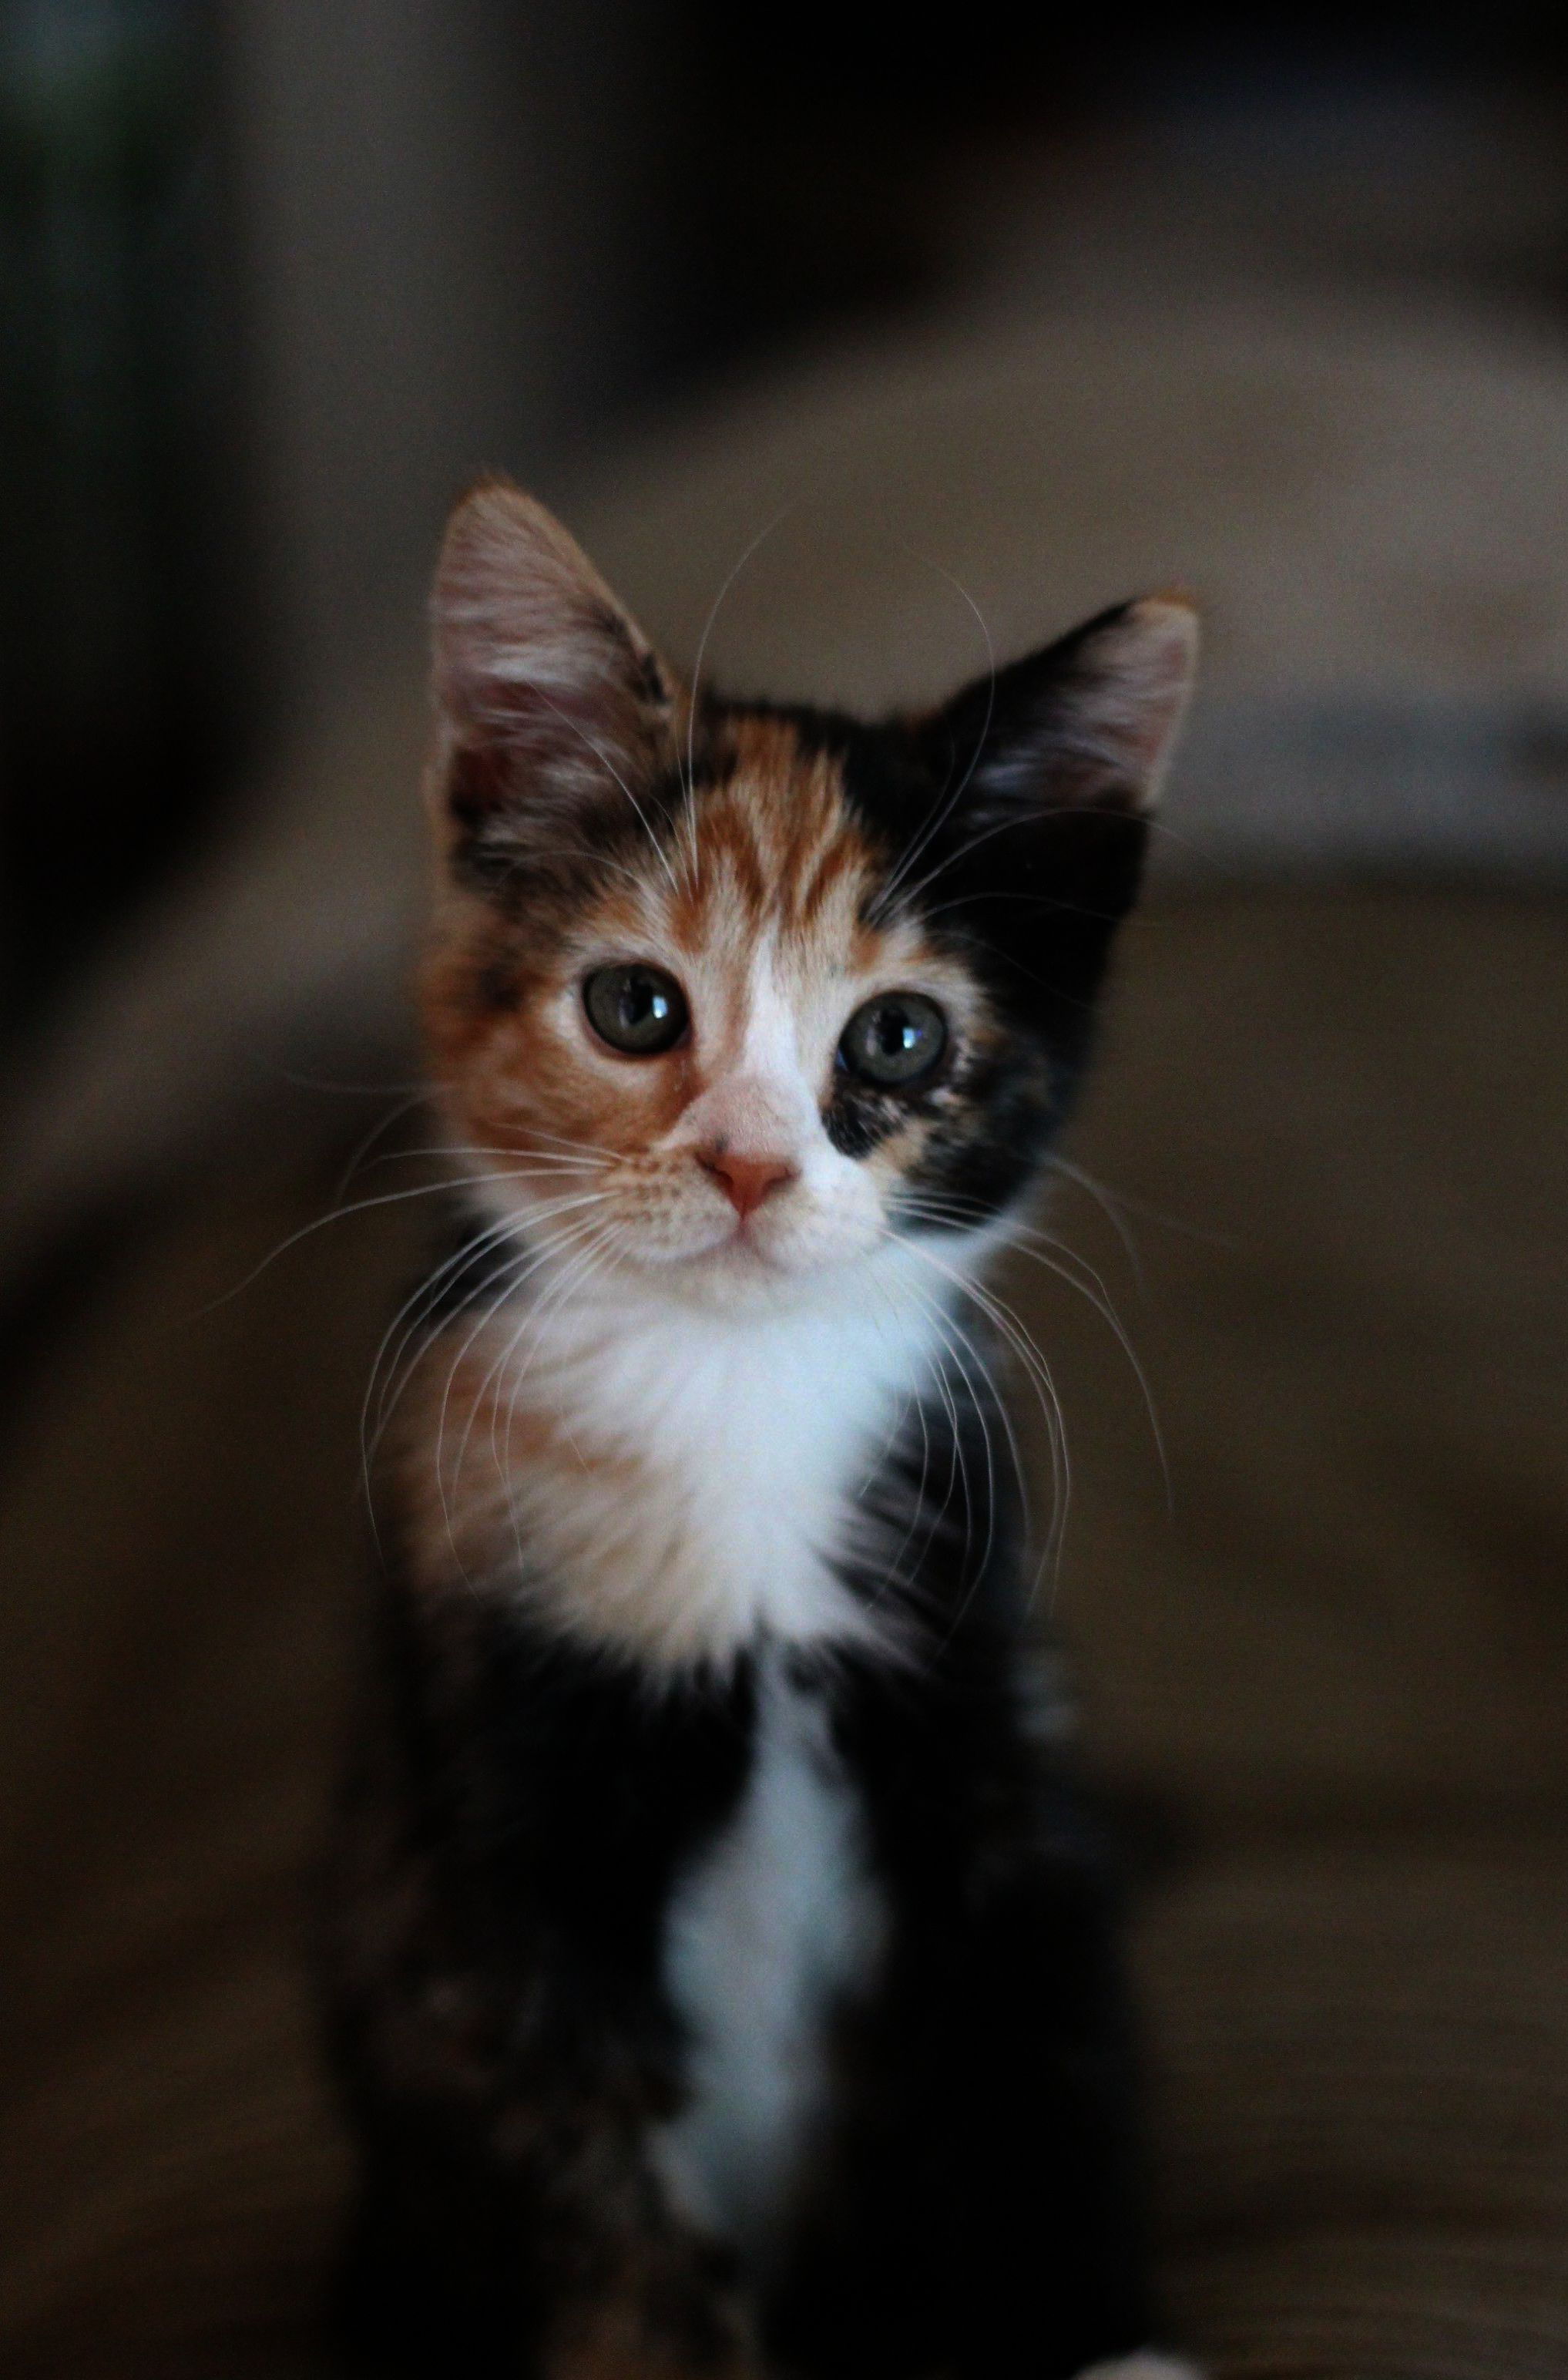 Cute Baby Kitten Puppy Pictures Near Cute Baby Kittens Images Around Cute Animals Clapping Gif Easy But Cute Animals To D Cute Cats Kittens Cutest Pretty Cats